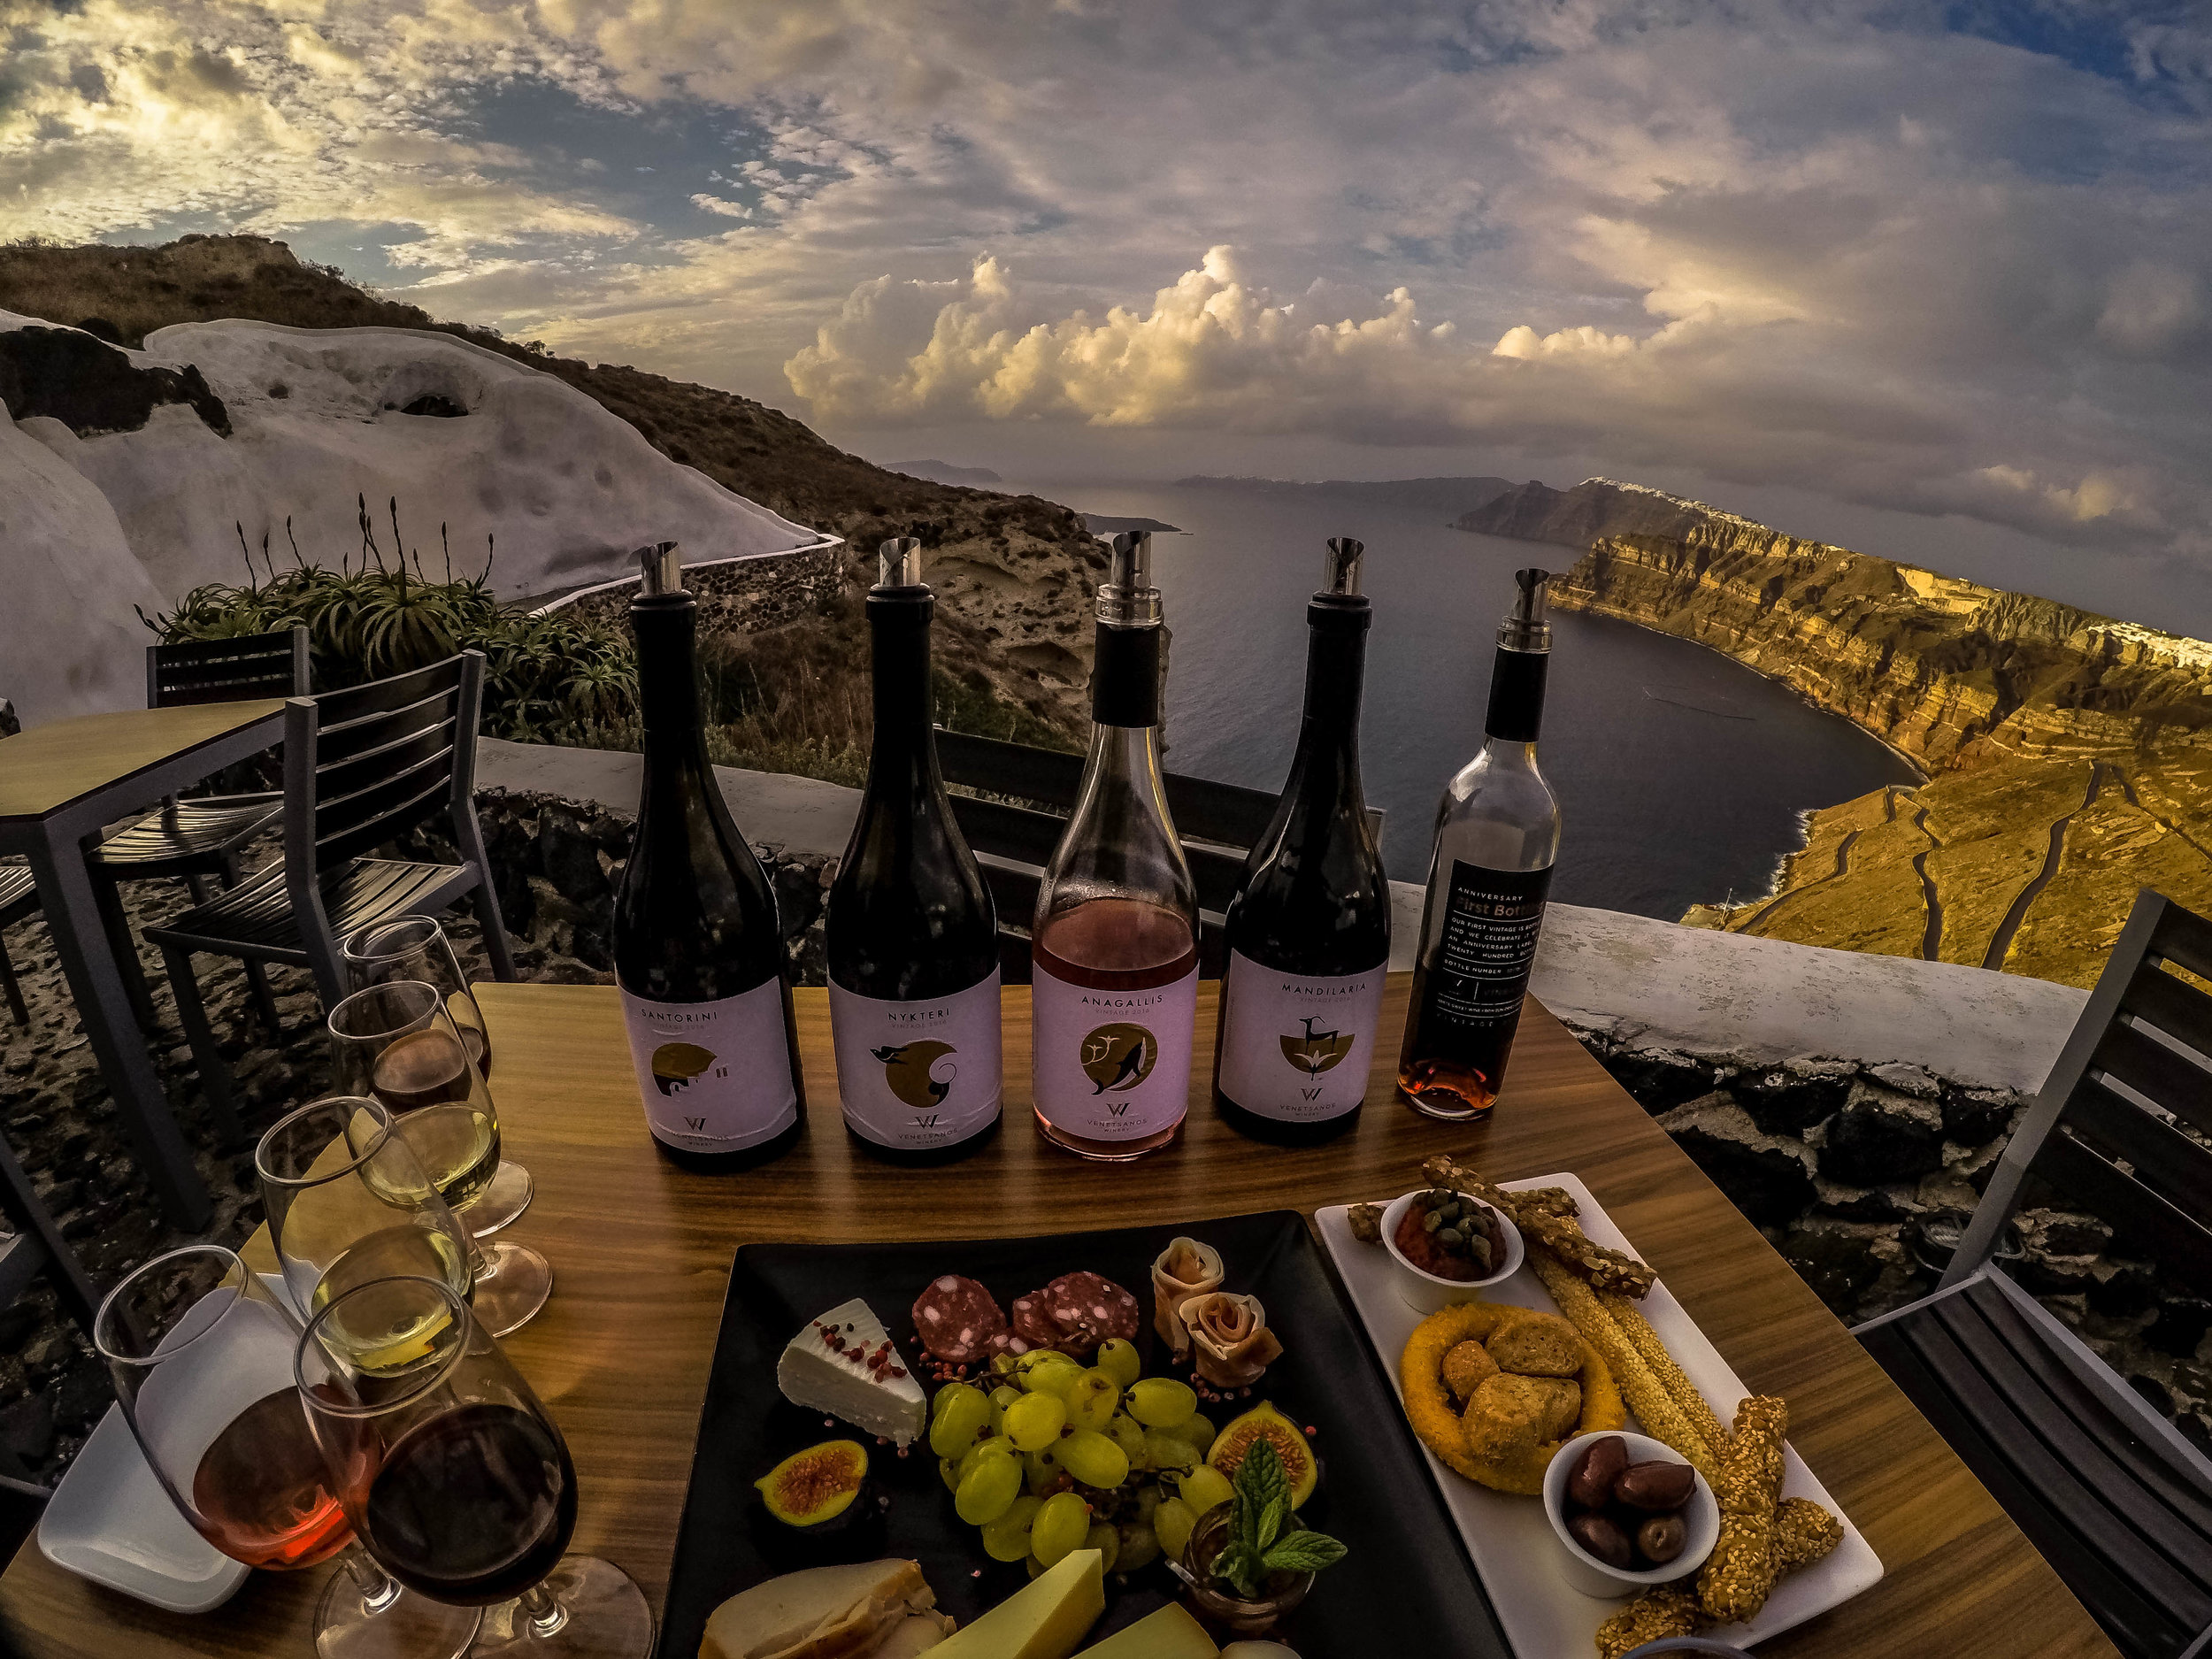 Wine tasting at Venetsanos Winery, Santorini